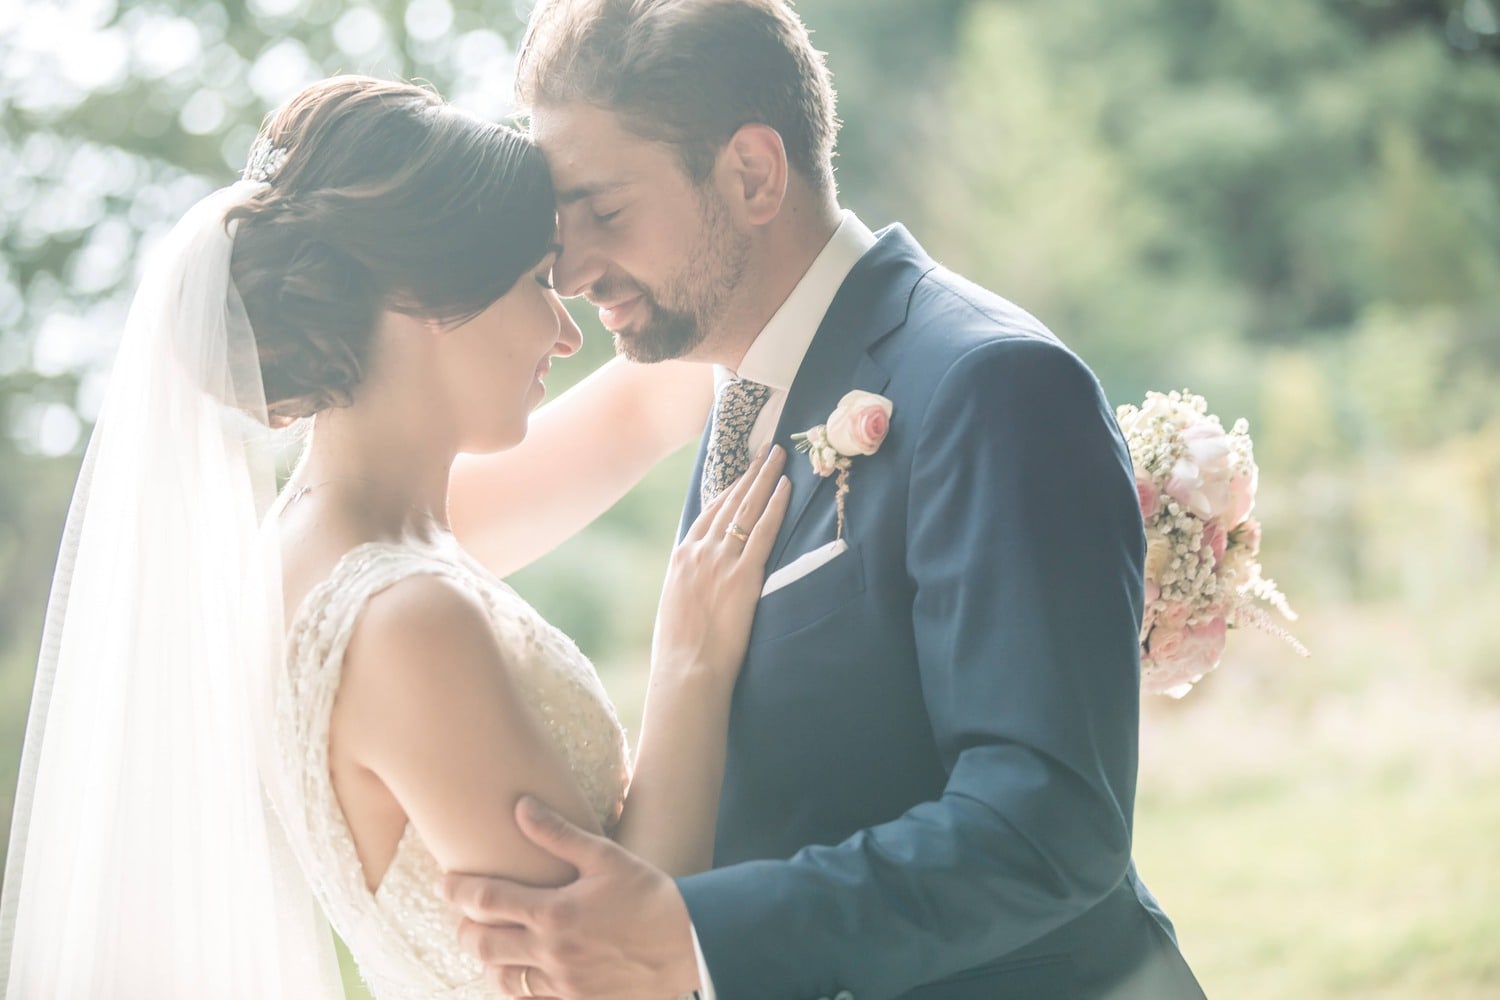 Image /var/www/vhosts/lvps92-60-120-255.vps.webfusion.co.uk/weddingphotographyselect/international/log-in/profiles/server/php/files/402677/Adriana & Antoine-332.jpg By Jean-Baptiste Chauvin